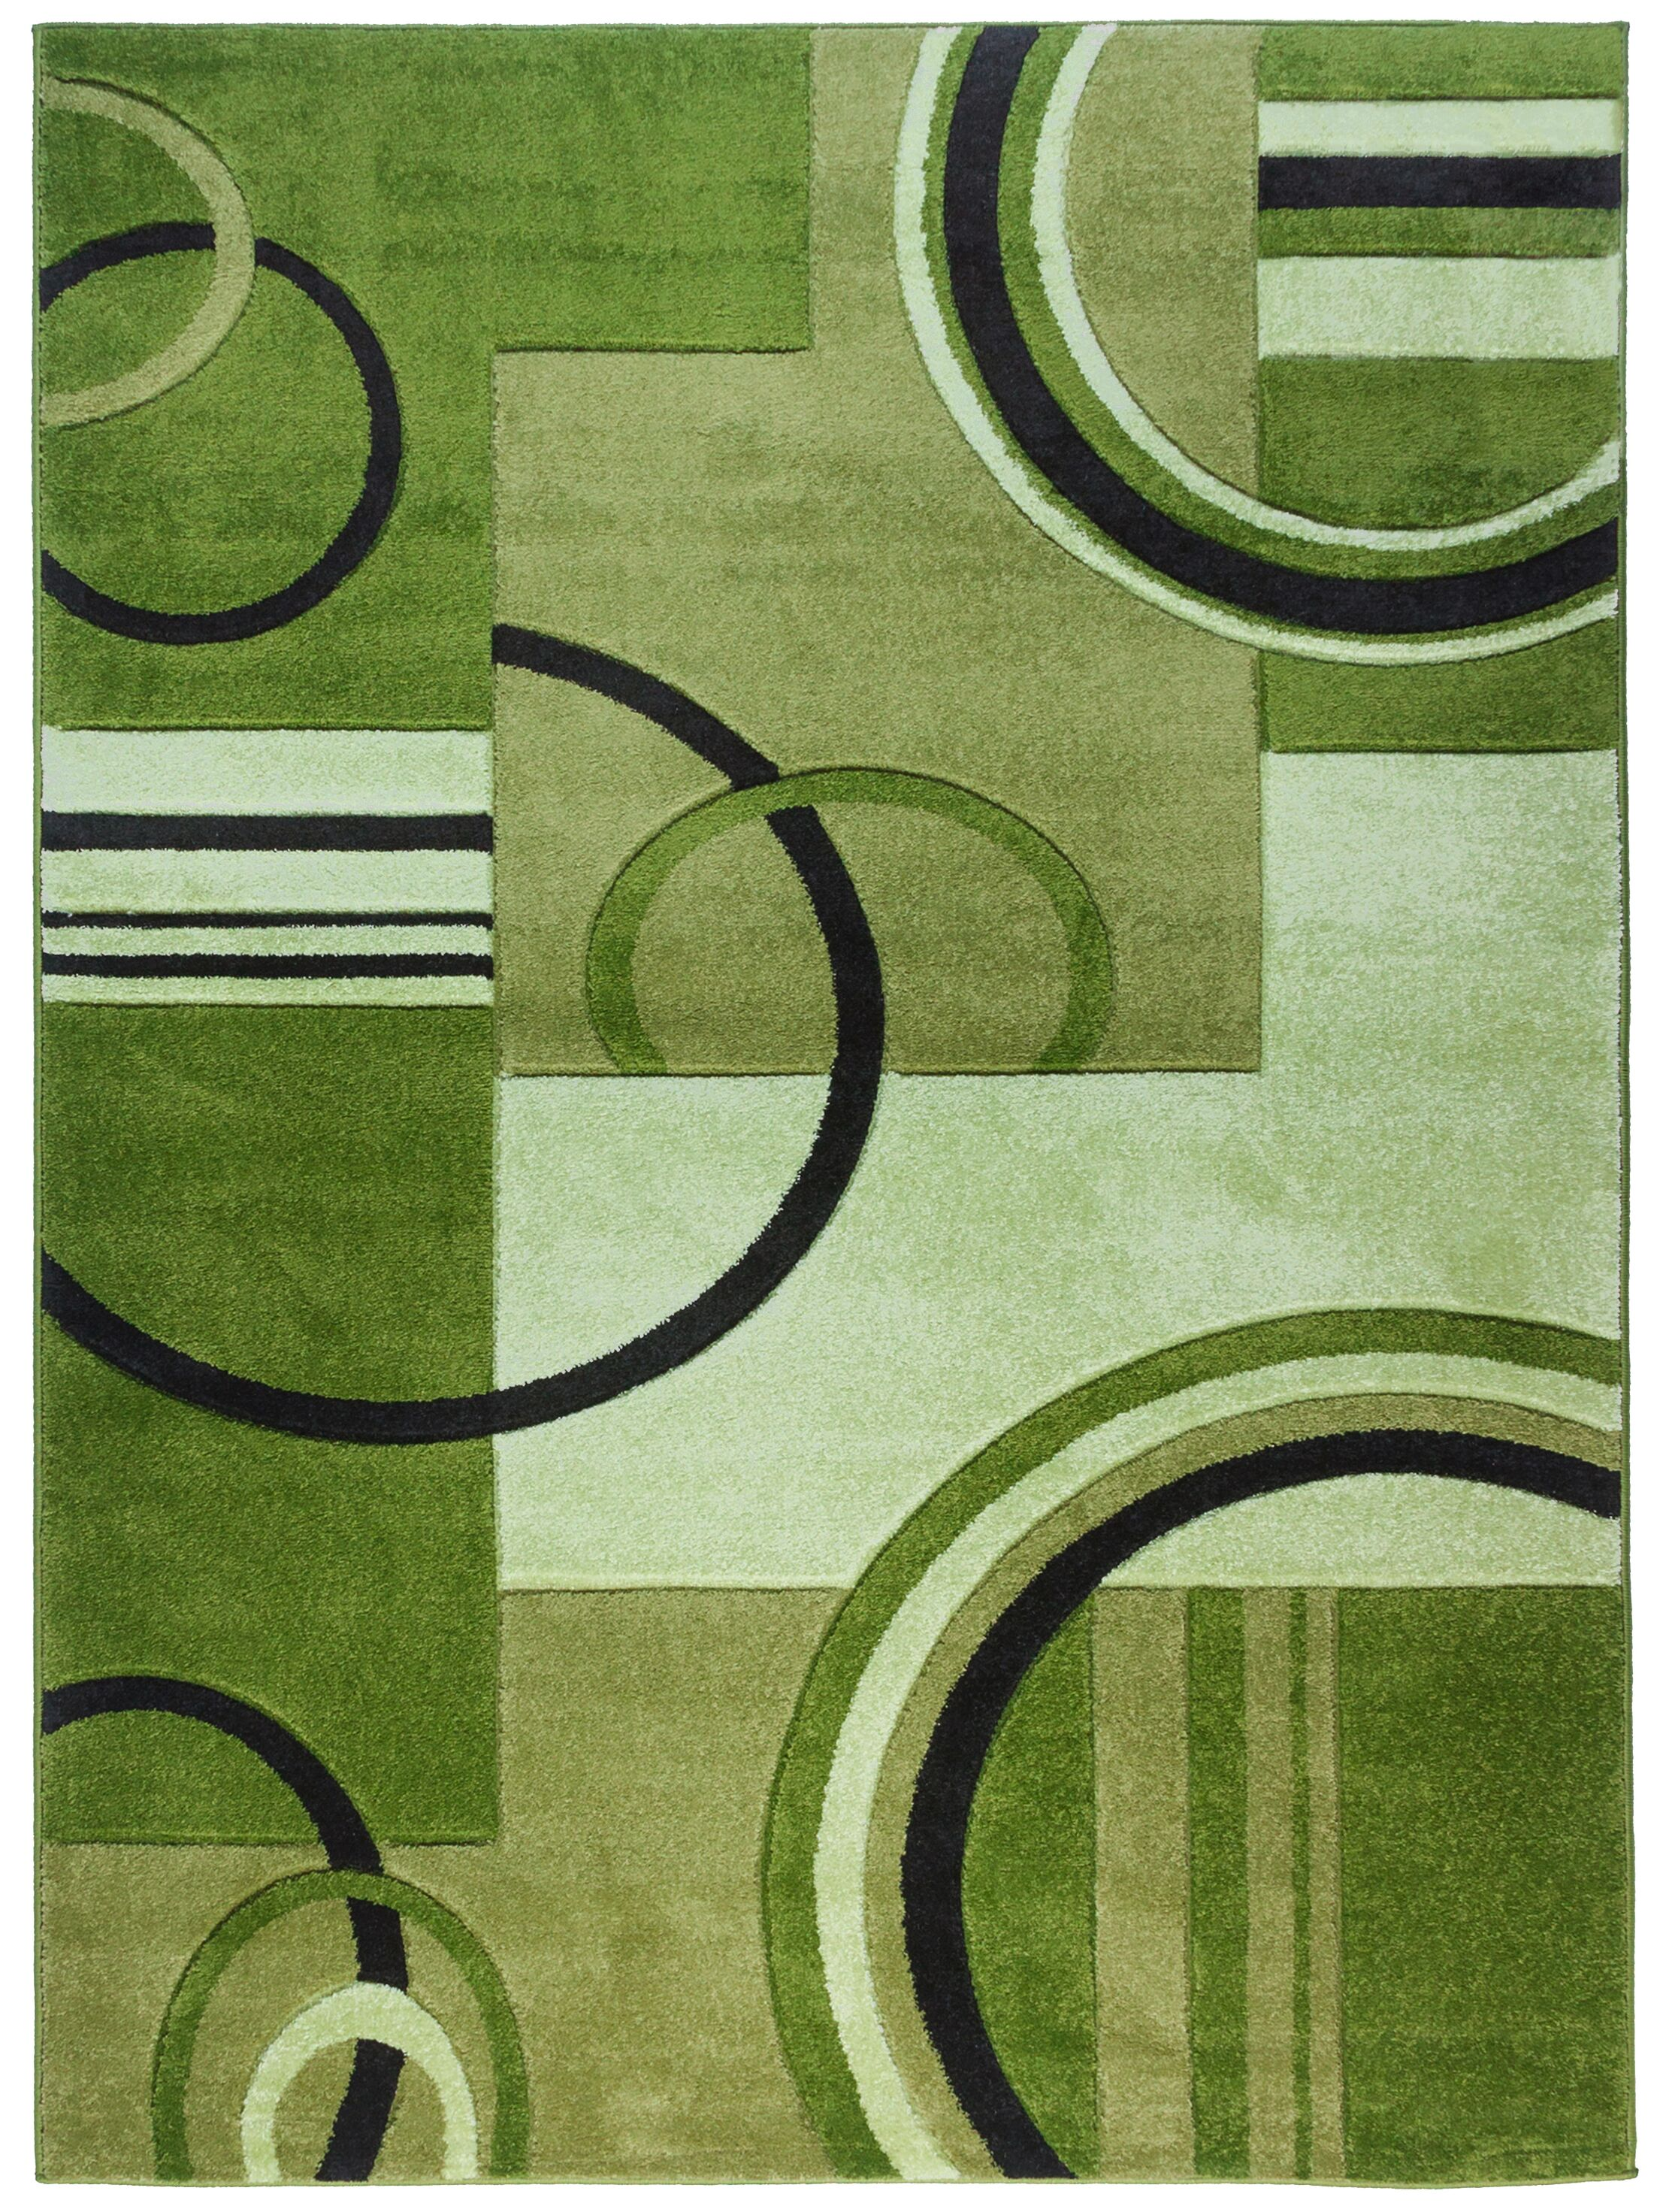 Jenkin Galaxy Waves Green Area Rug Rug Size: Rectangle 5'3